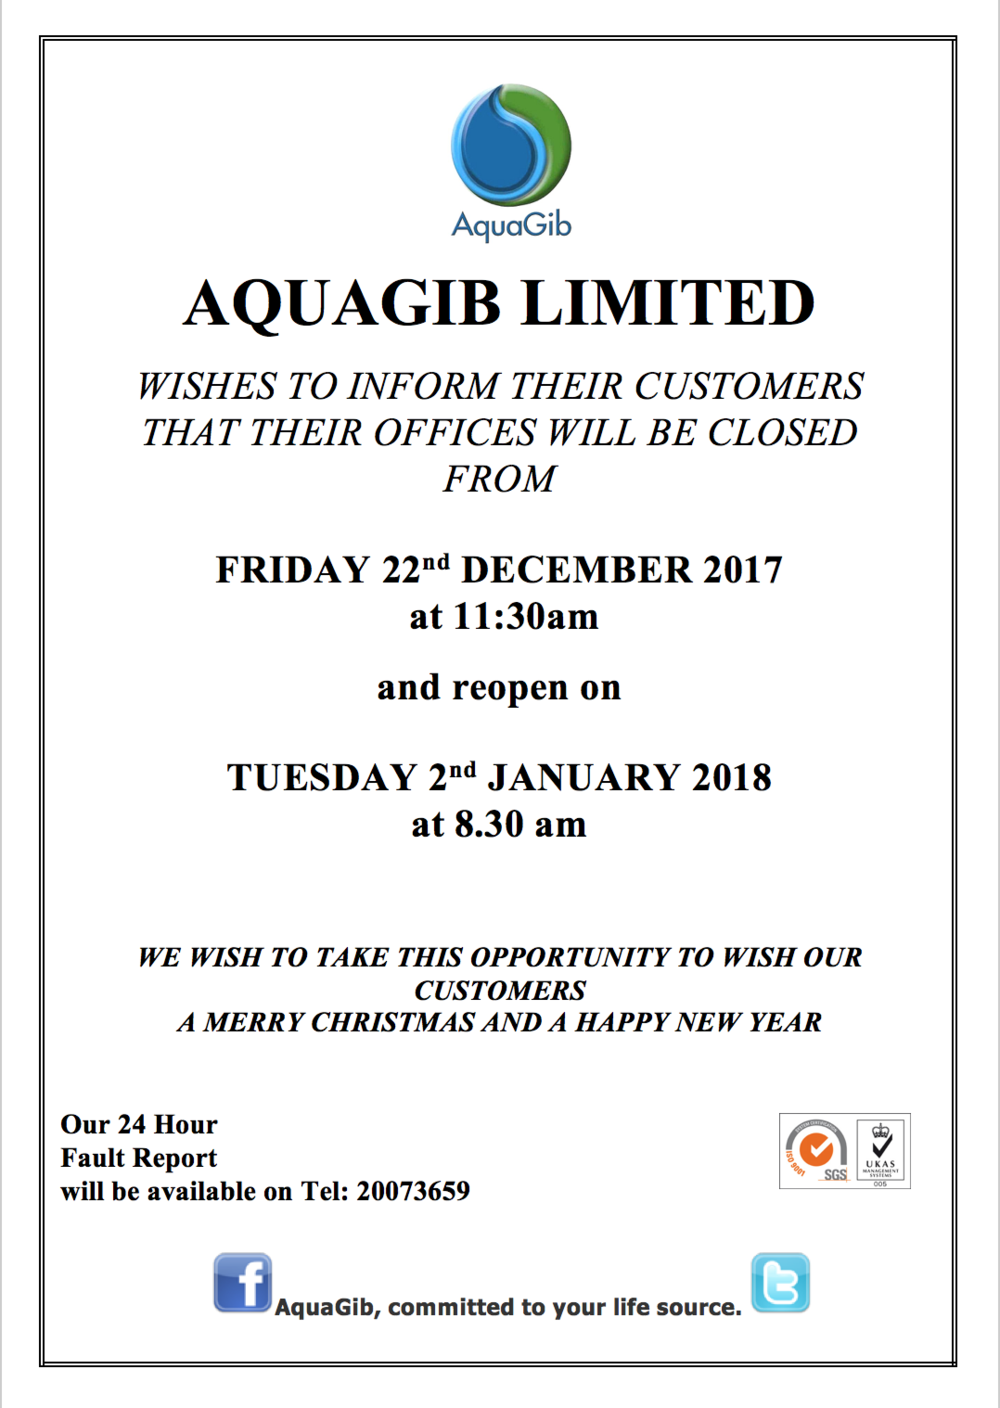 AquaGib Christmas Hours.png